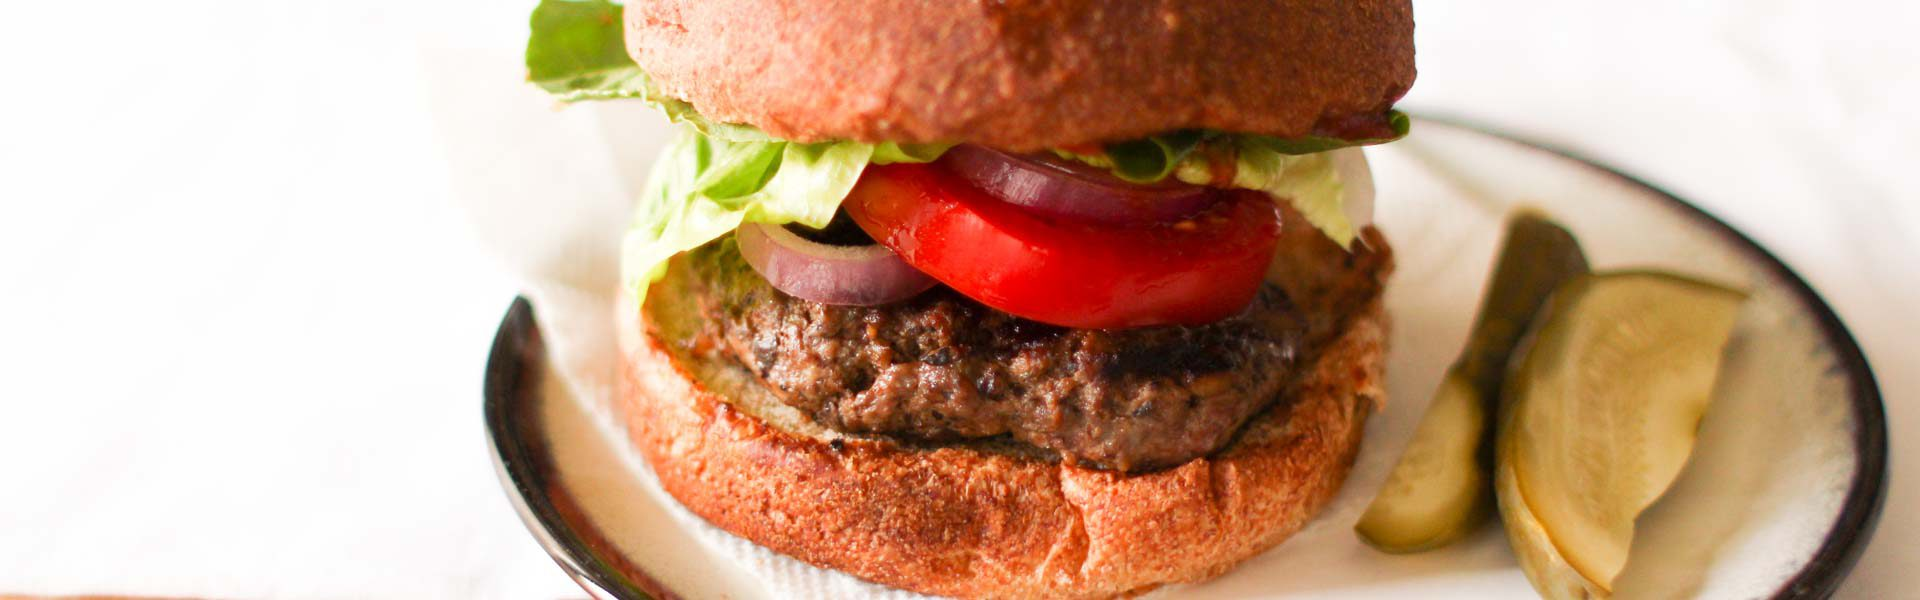 Blended Mushroom Beef Burger with Dried Plum Puree makes a burger that tastes juicy and rich without as much meat or sodium.